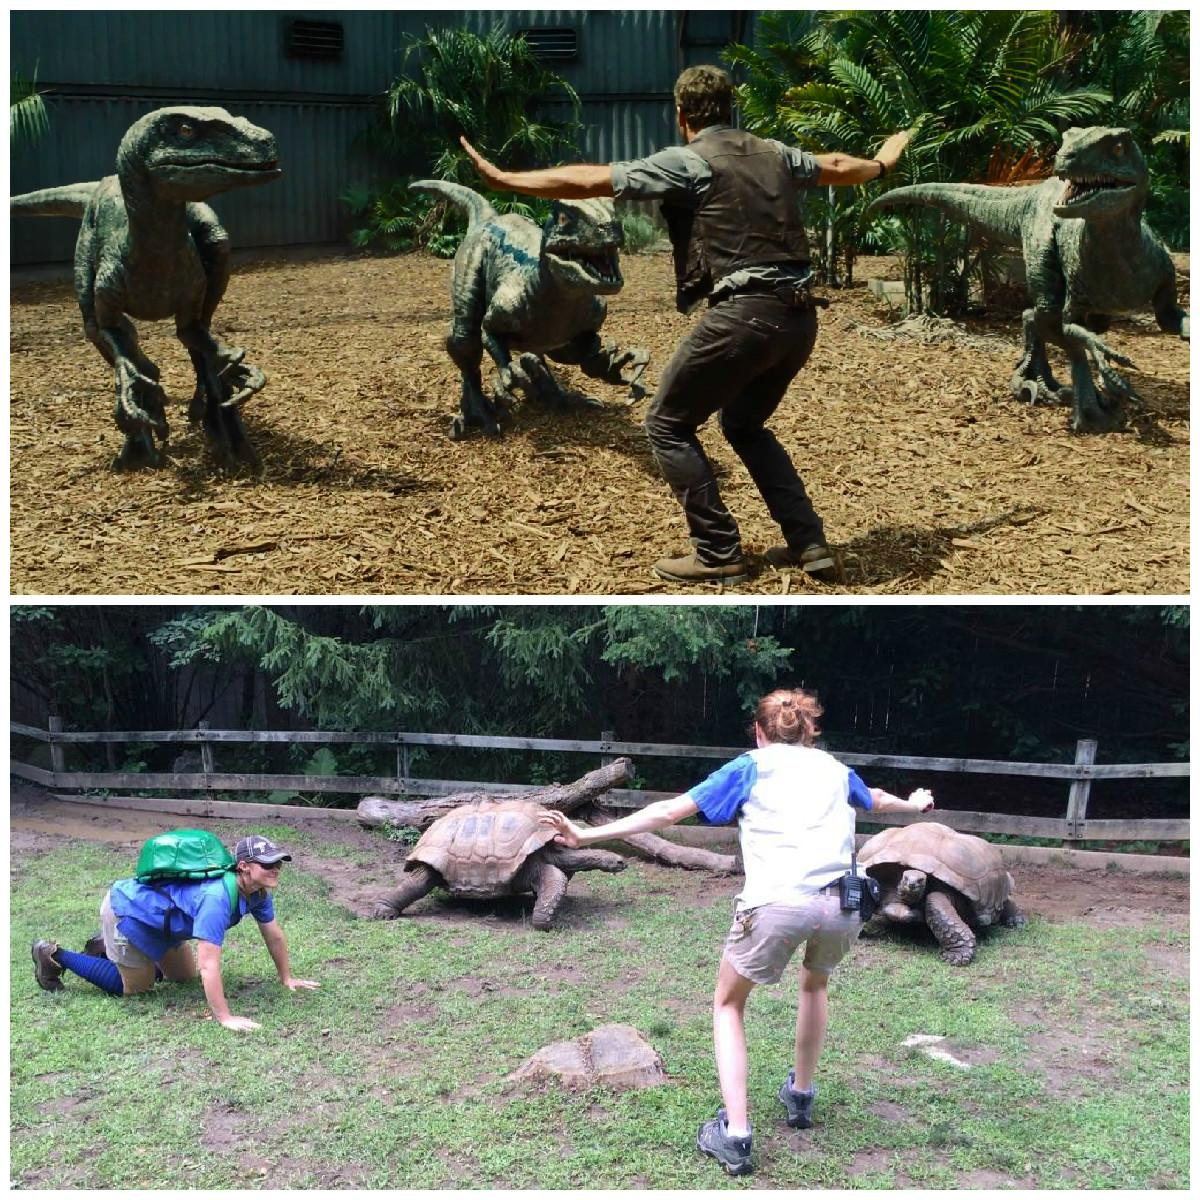 We couldn't resist. #JurassicZoo #prattkeeping http://t.co/b3m8deMRNF